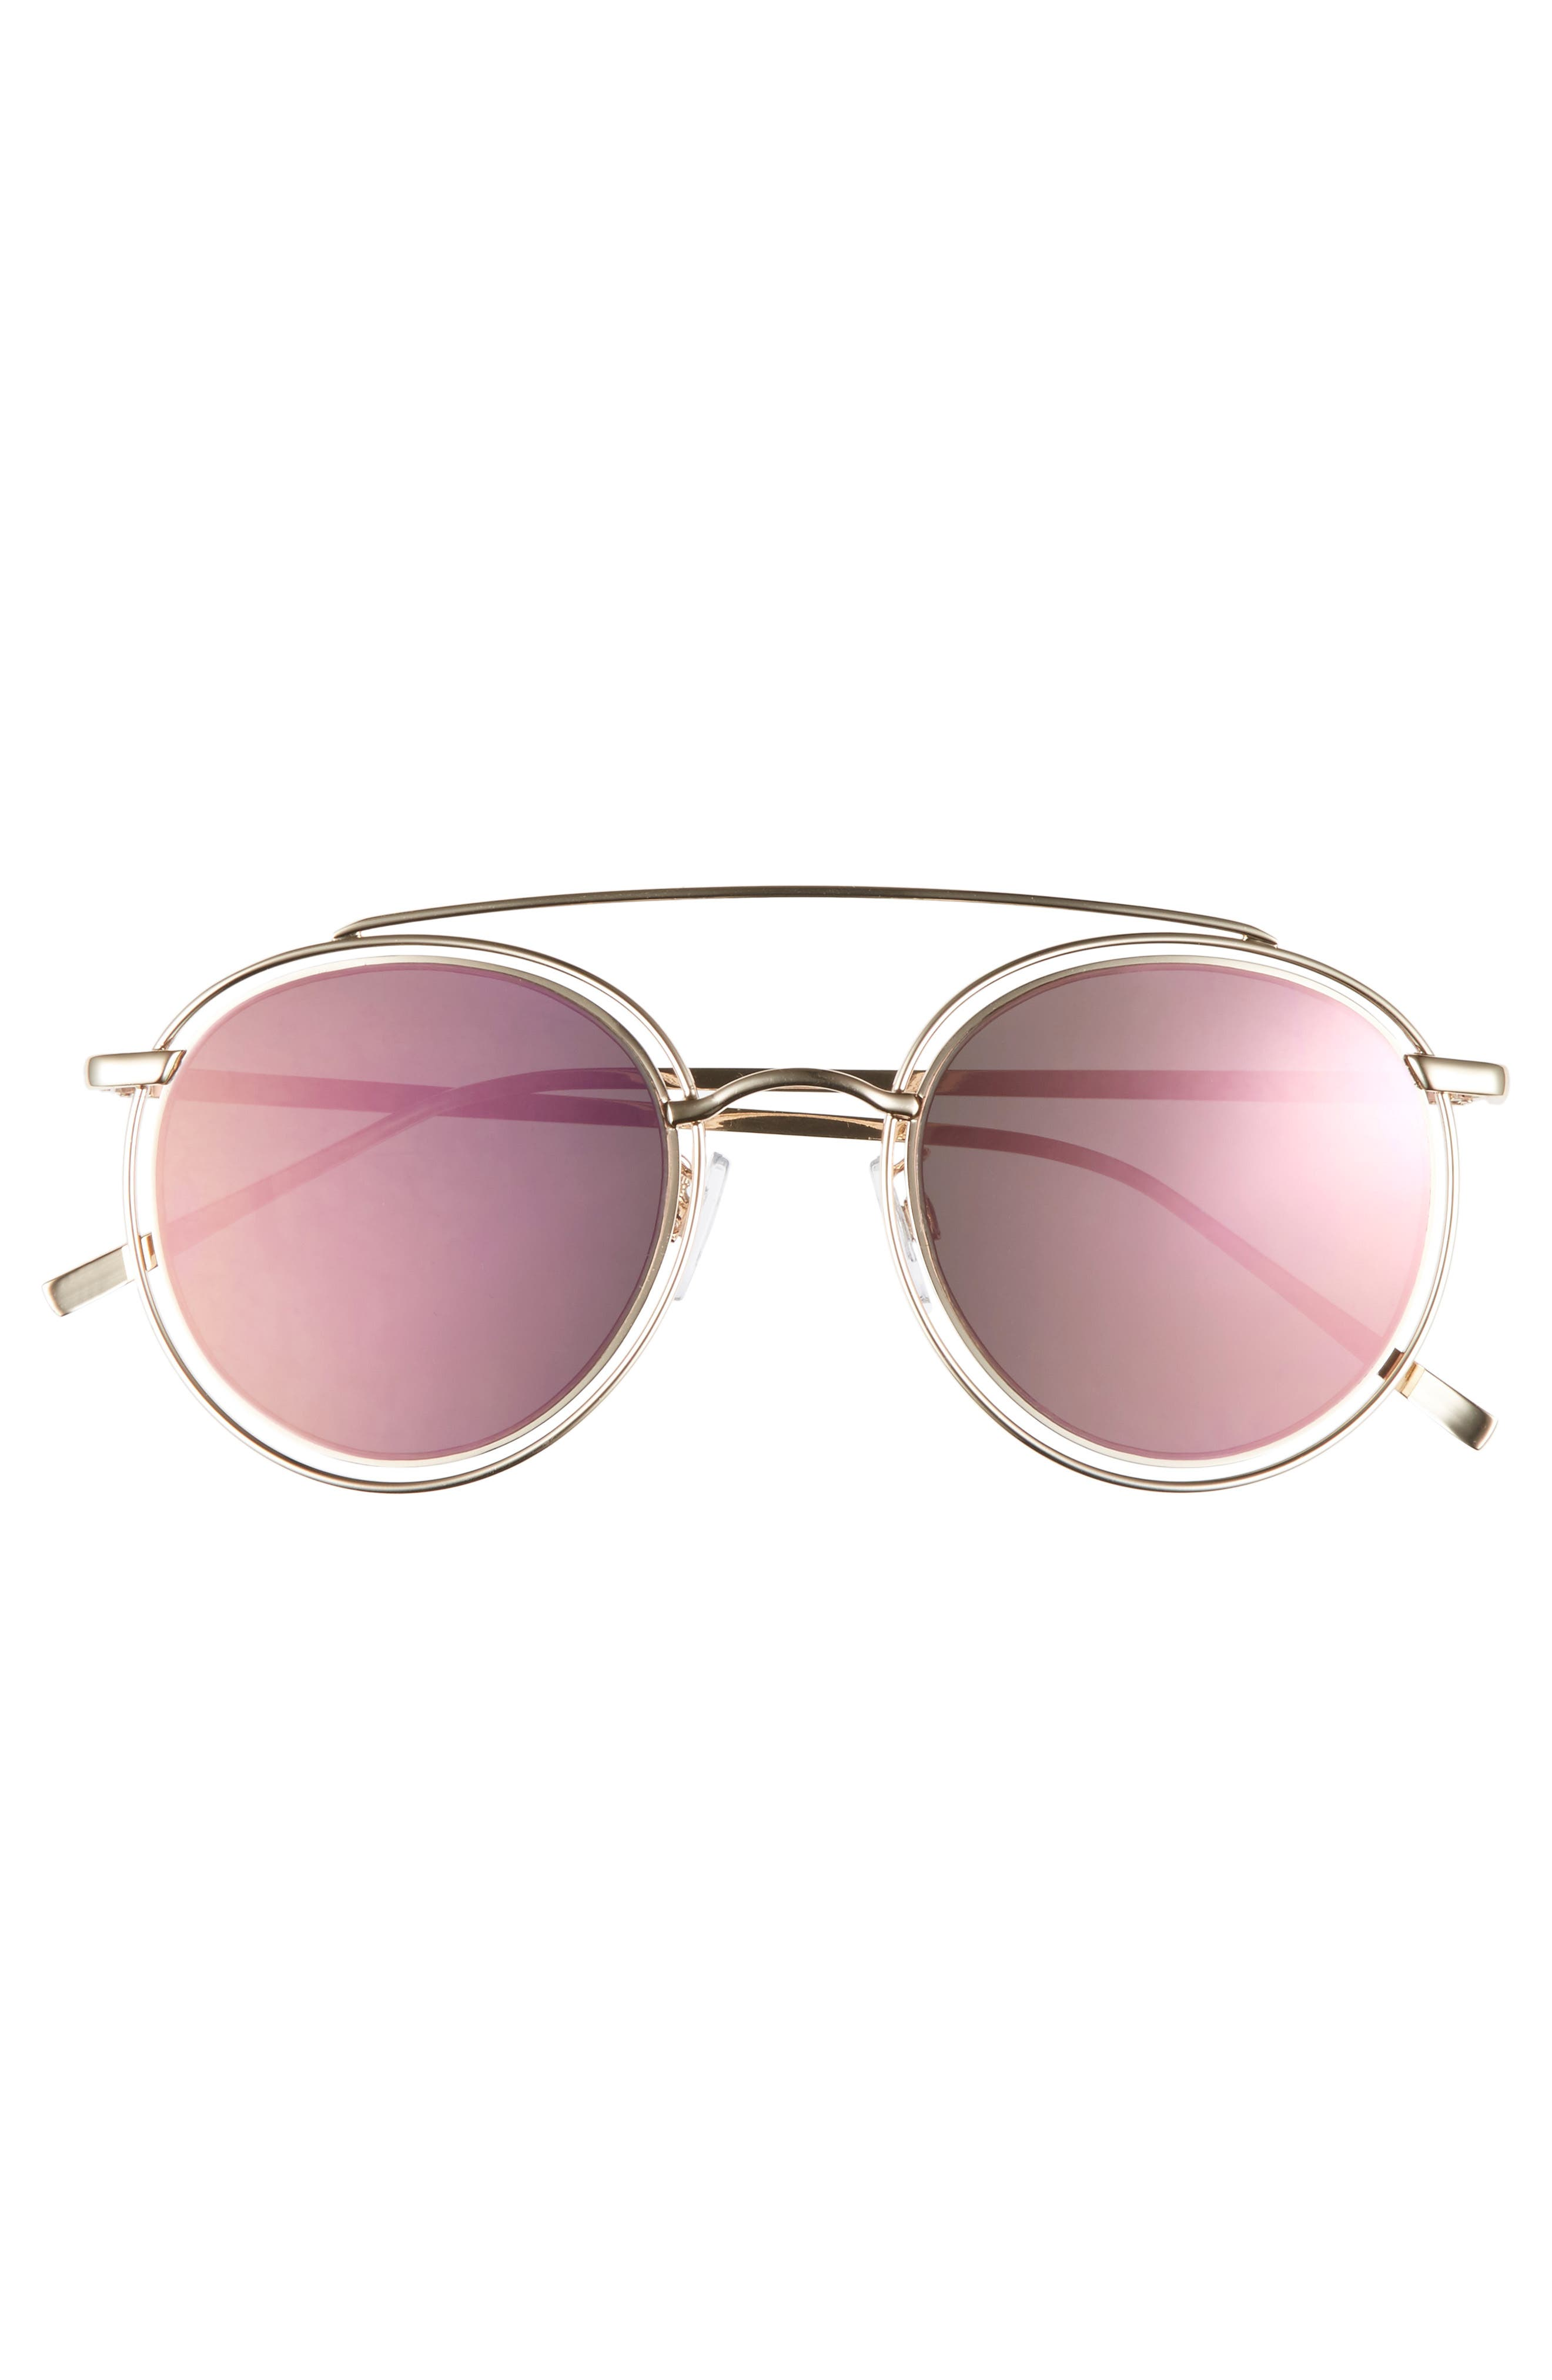 50mm Browbar Sunglasses,                             Alternate thumbnail 3, color,                             GOLD/ PINK